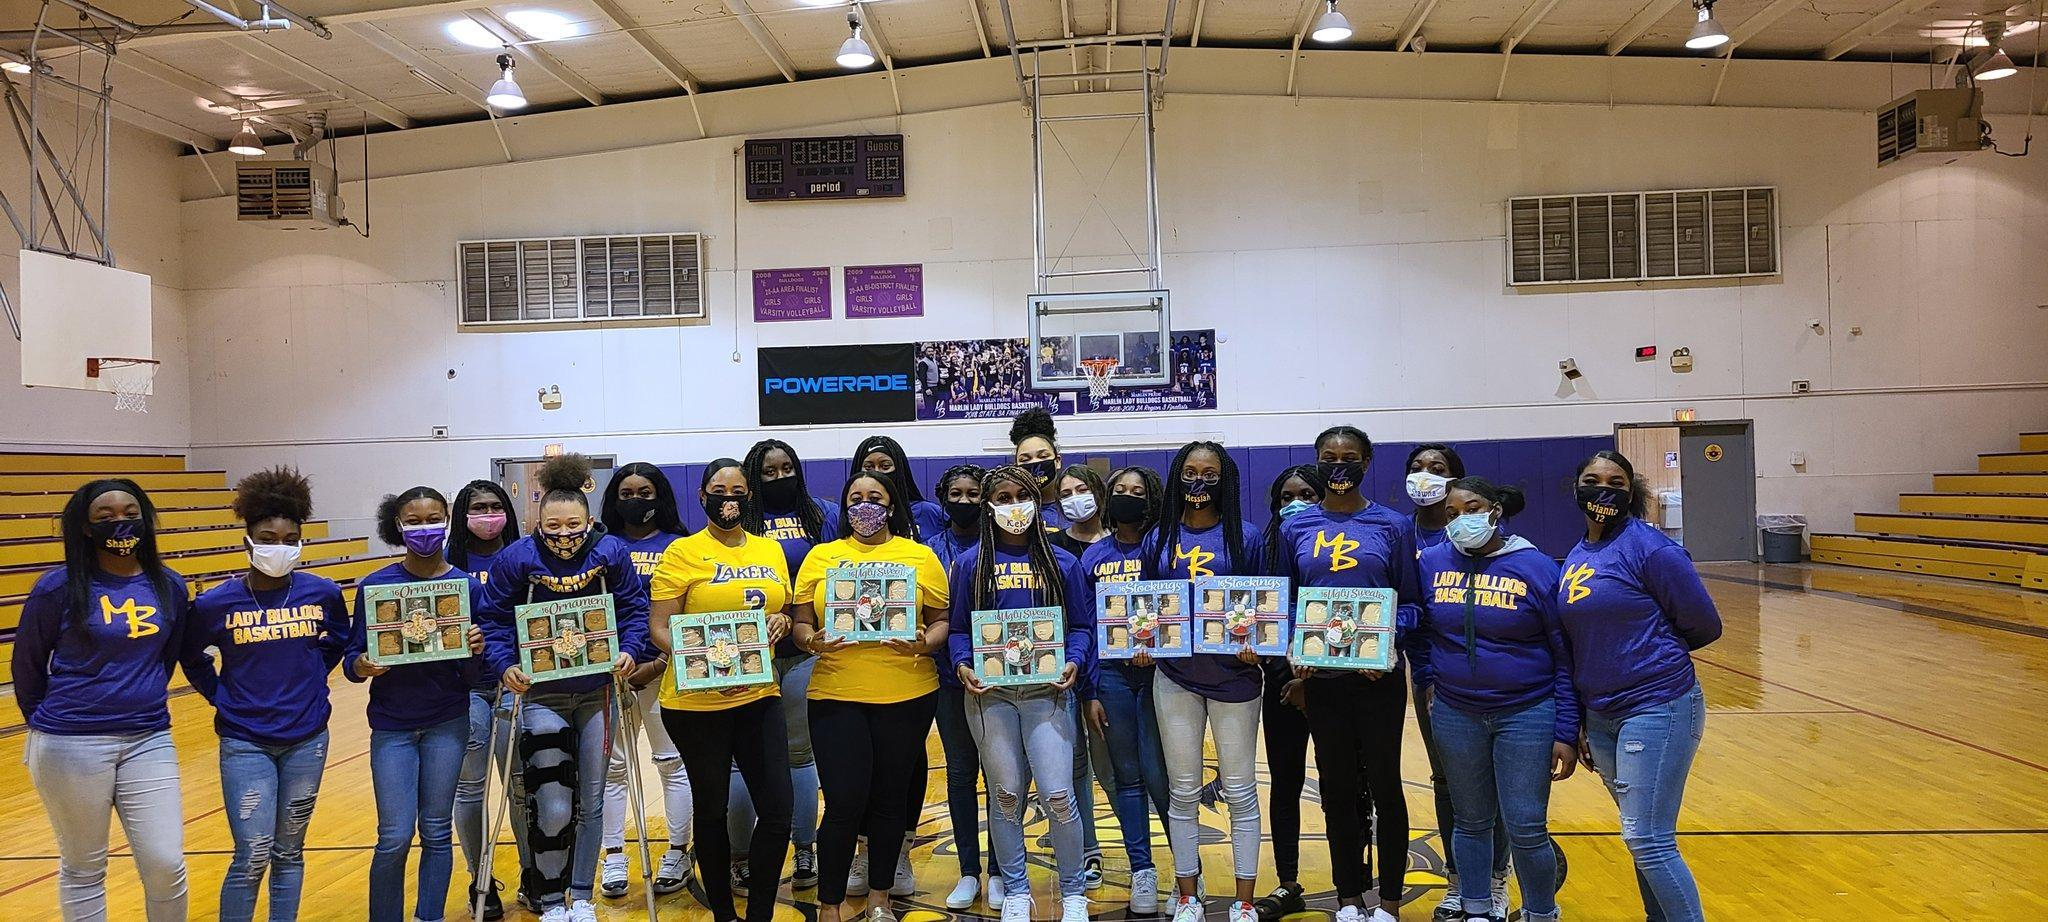 The Marlin Girls Varsity Basketball team donated cookies to Marlin Elementary School on Tuesday, December 18. The Lady Bulldogs will be back on the court in Marlin on Dec. 29, where they will take on the Connally Cadets.